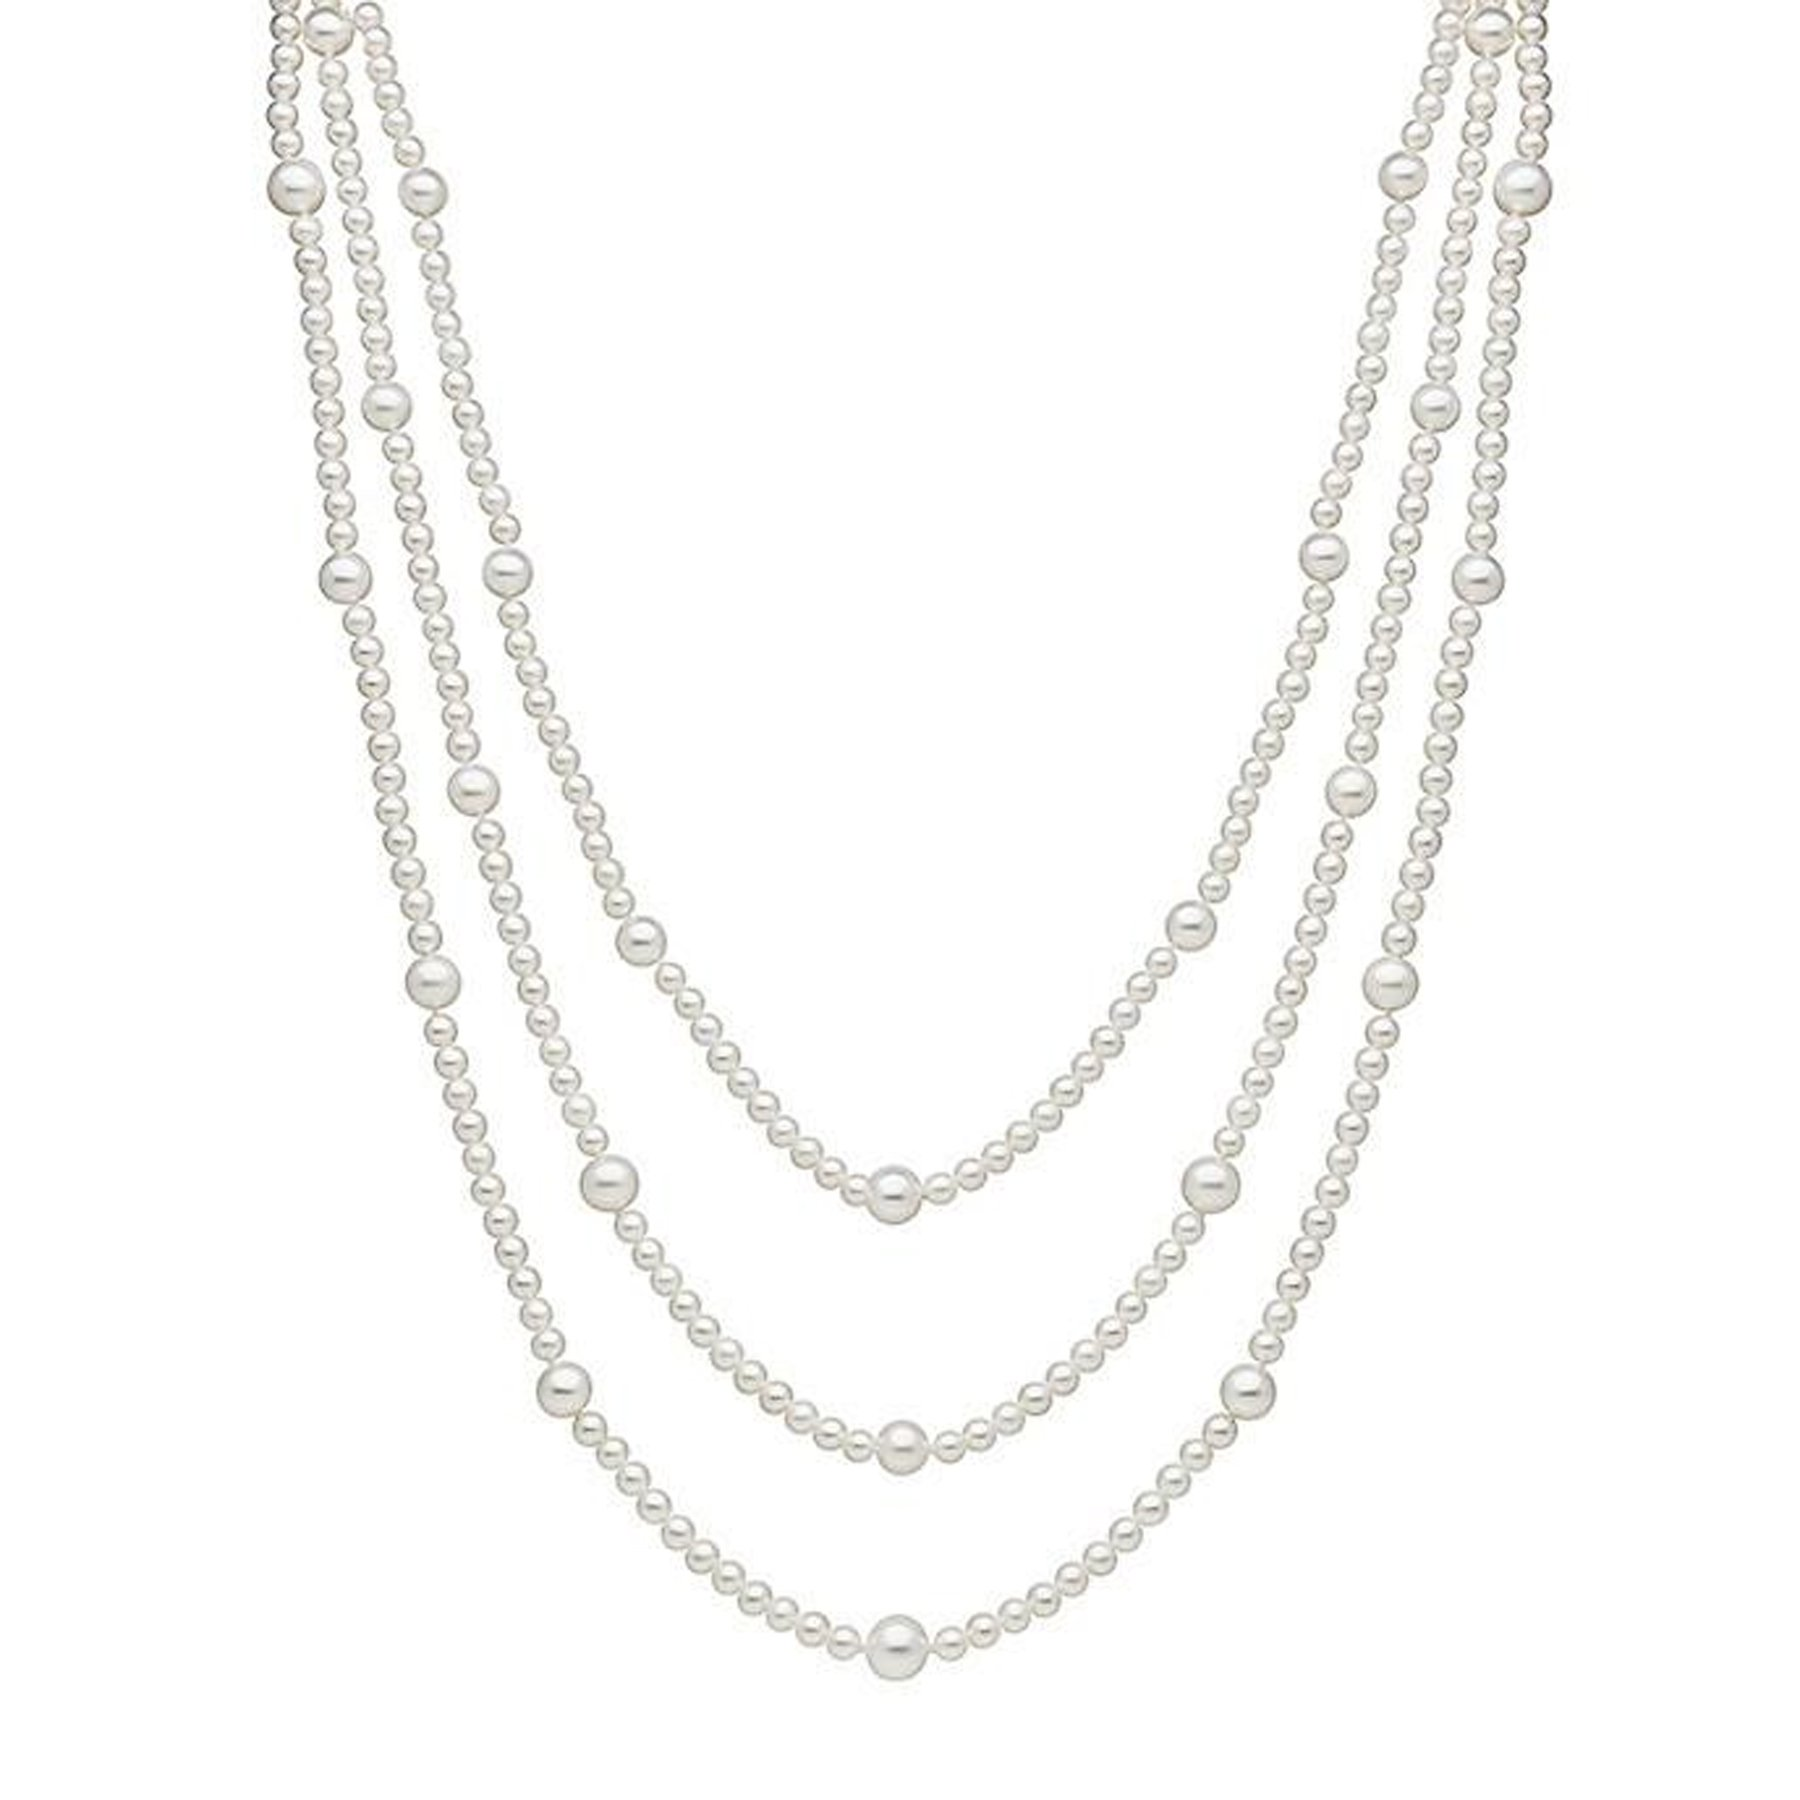 100'' White Multi Size Freshwater Cultured Pearl Necklace Endless